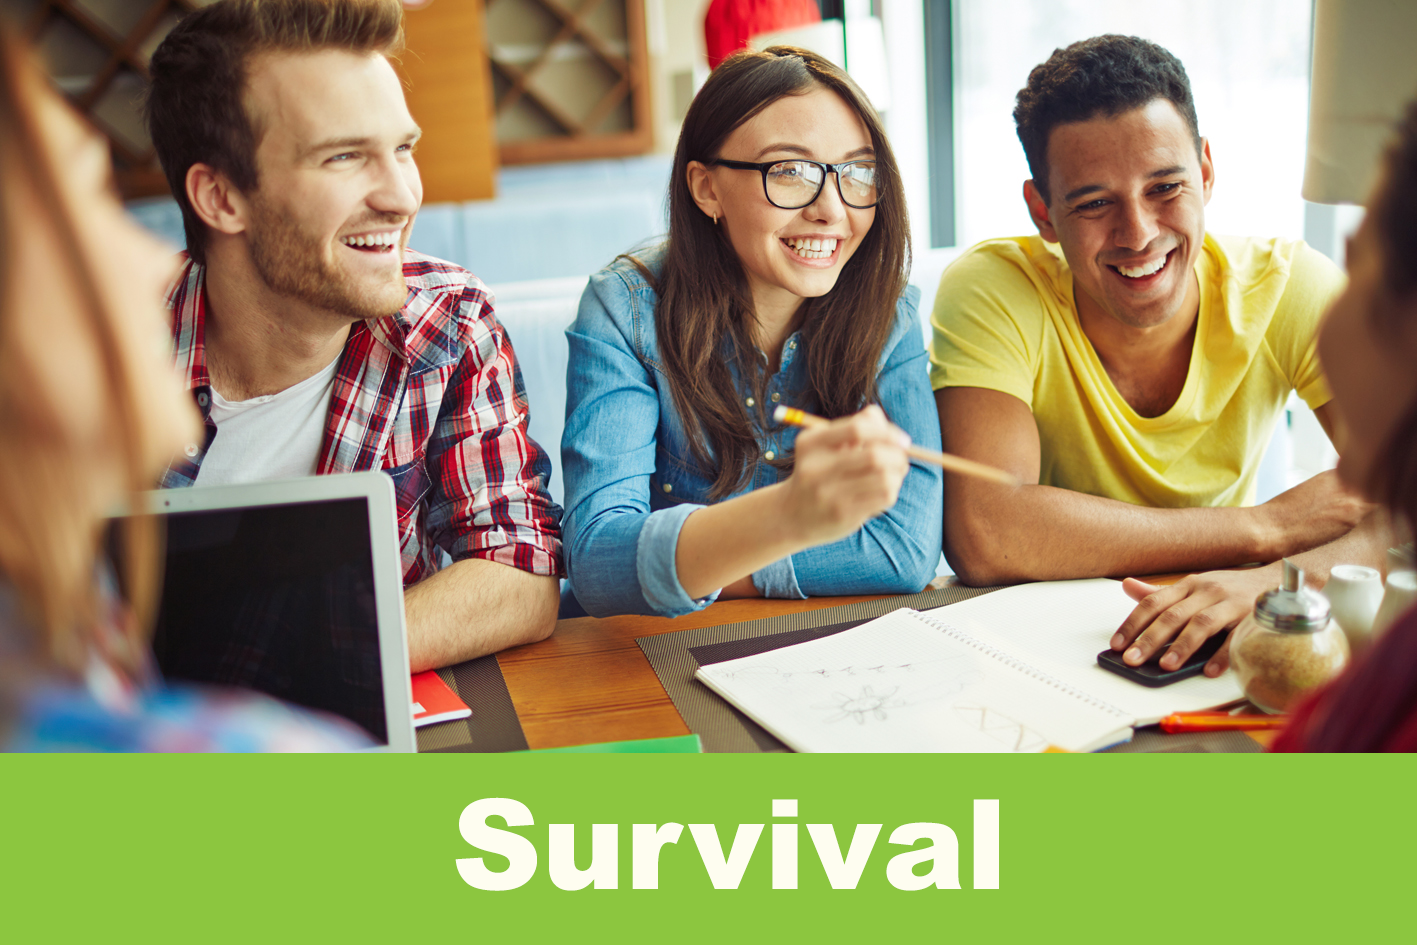 Survival One Week Intensive / 15 - 19 February 2021